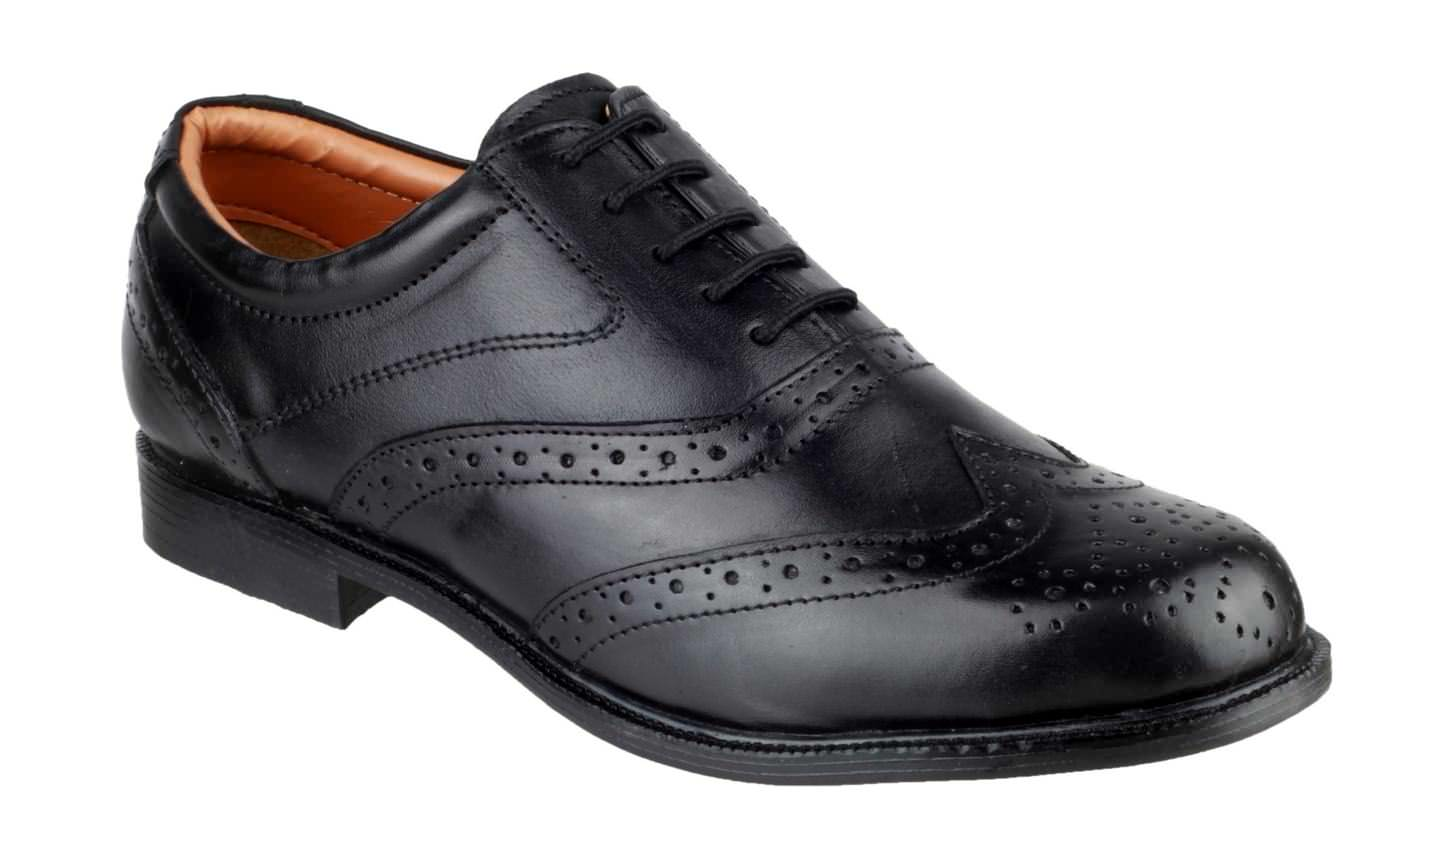 Amblers Liverpool Oxford Brogue Non-Safety Shoe